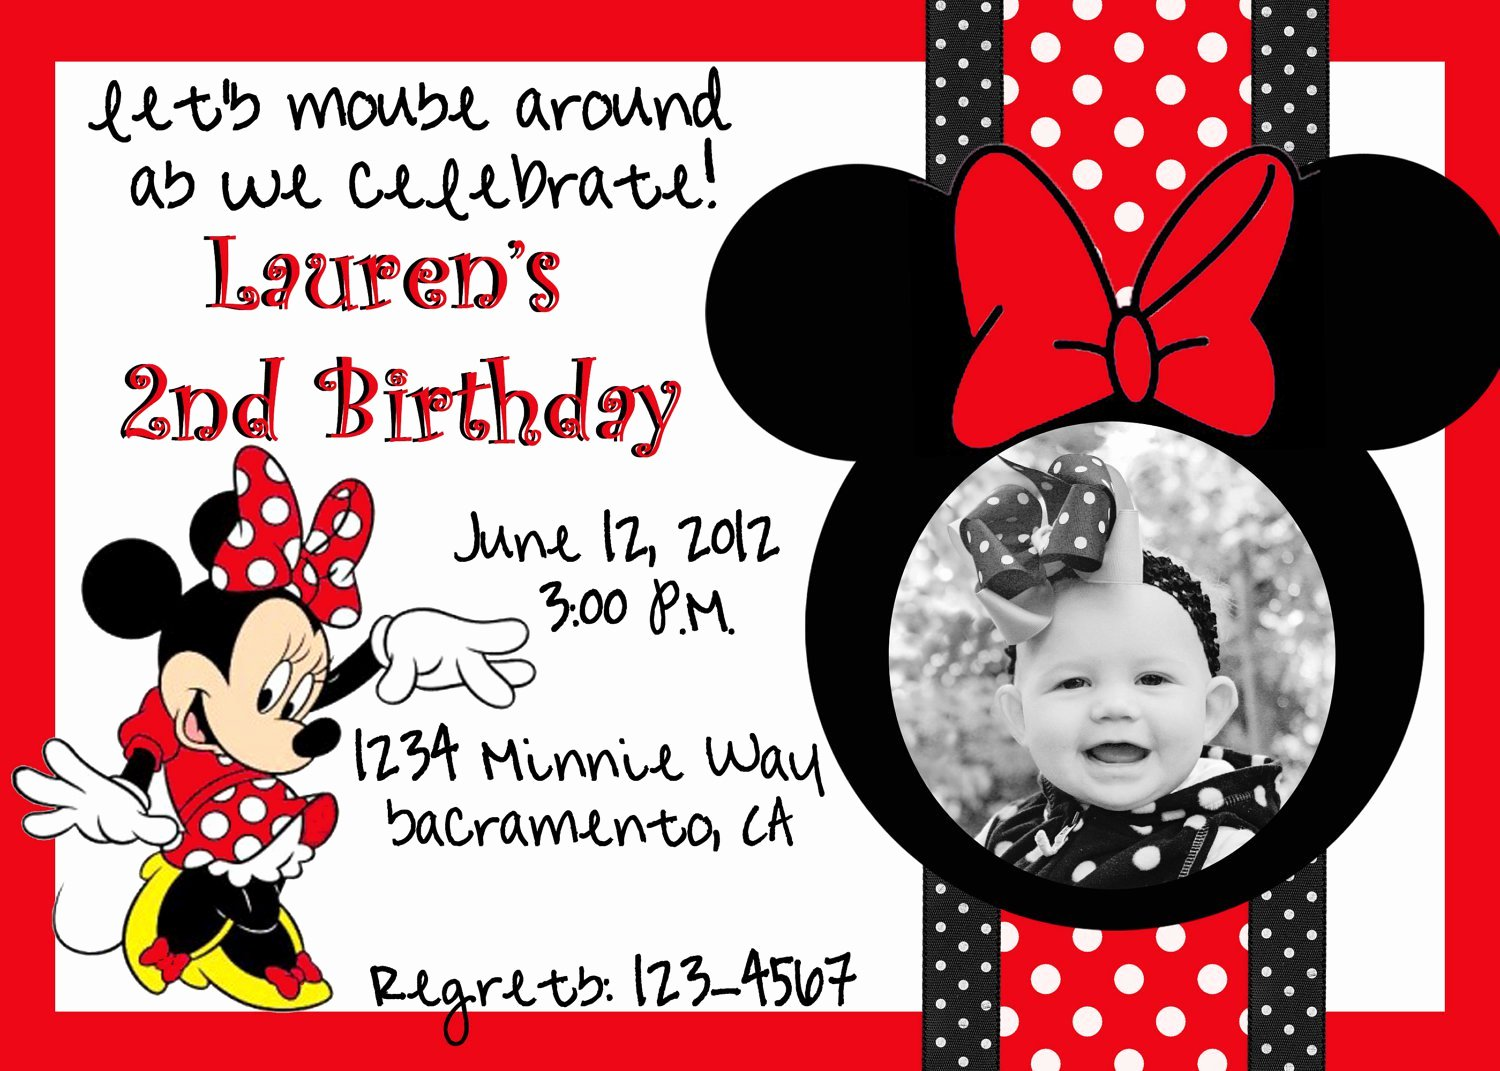 Minnie Mouse Invitation Wording Beautiful Minnie Mouse Birthday Invitations Wording